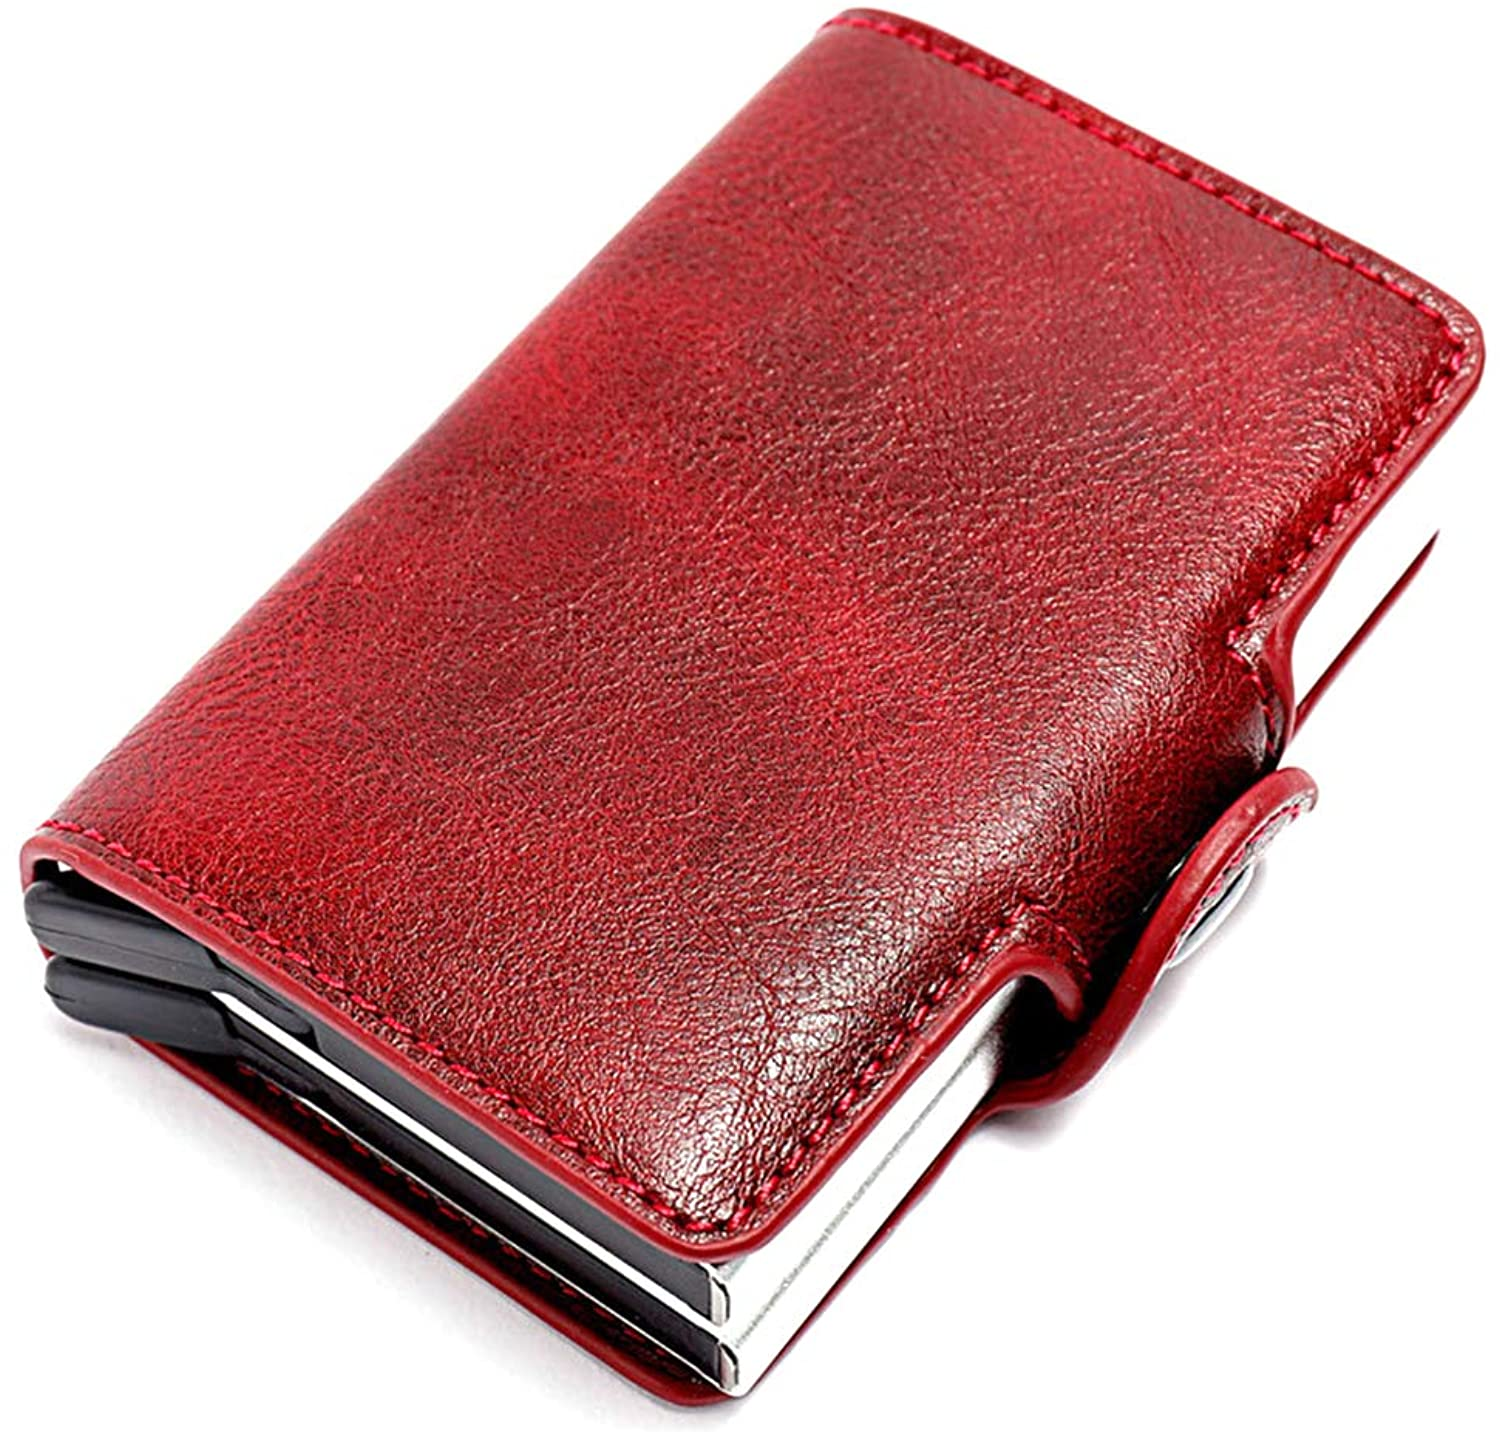 Oichy RFID Blocking Card Wallet Automatic Pop Up Wallet Aluminum Business Wallet for Men and Women Credit Card Holder